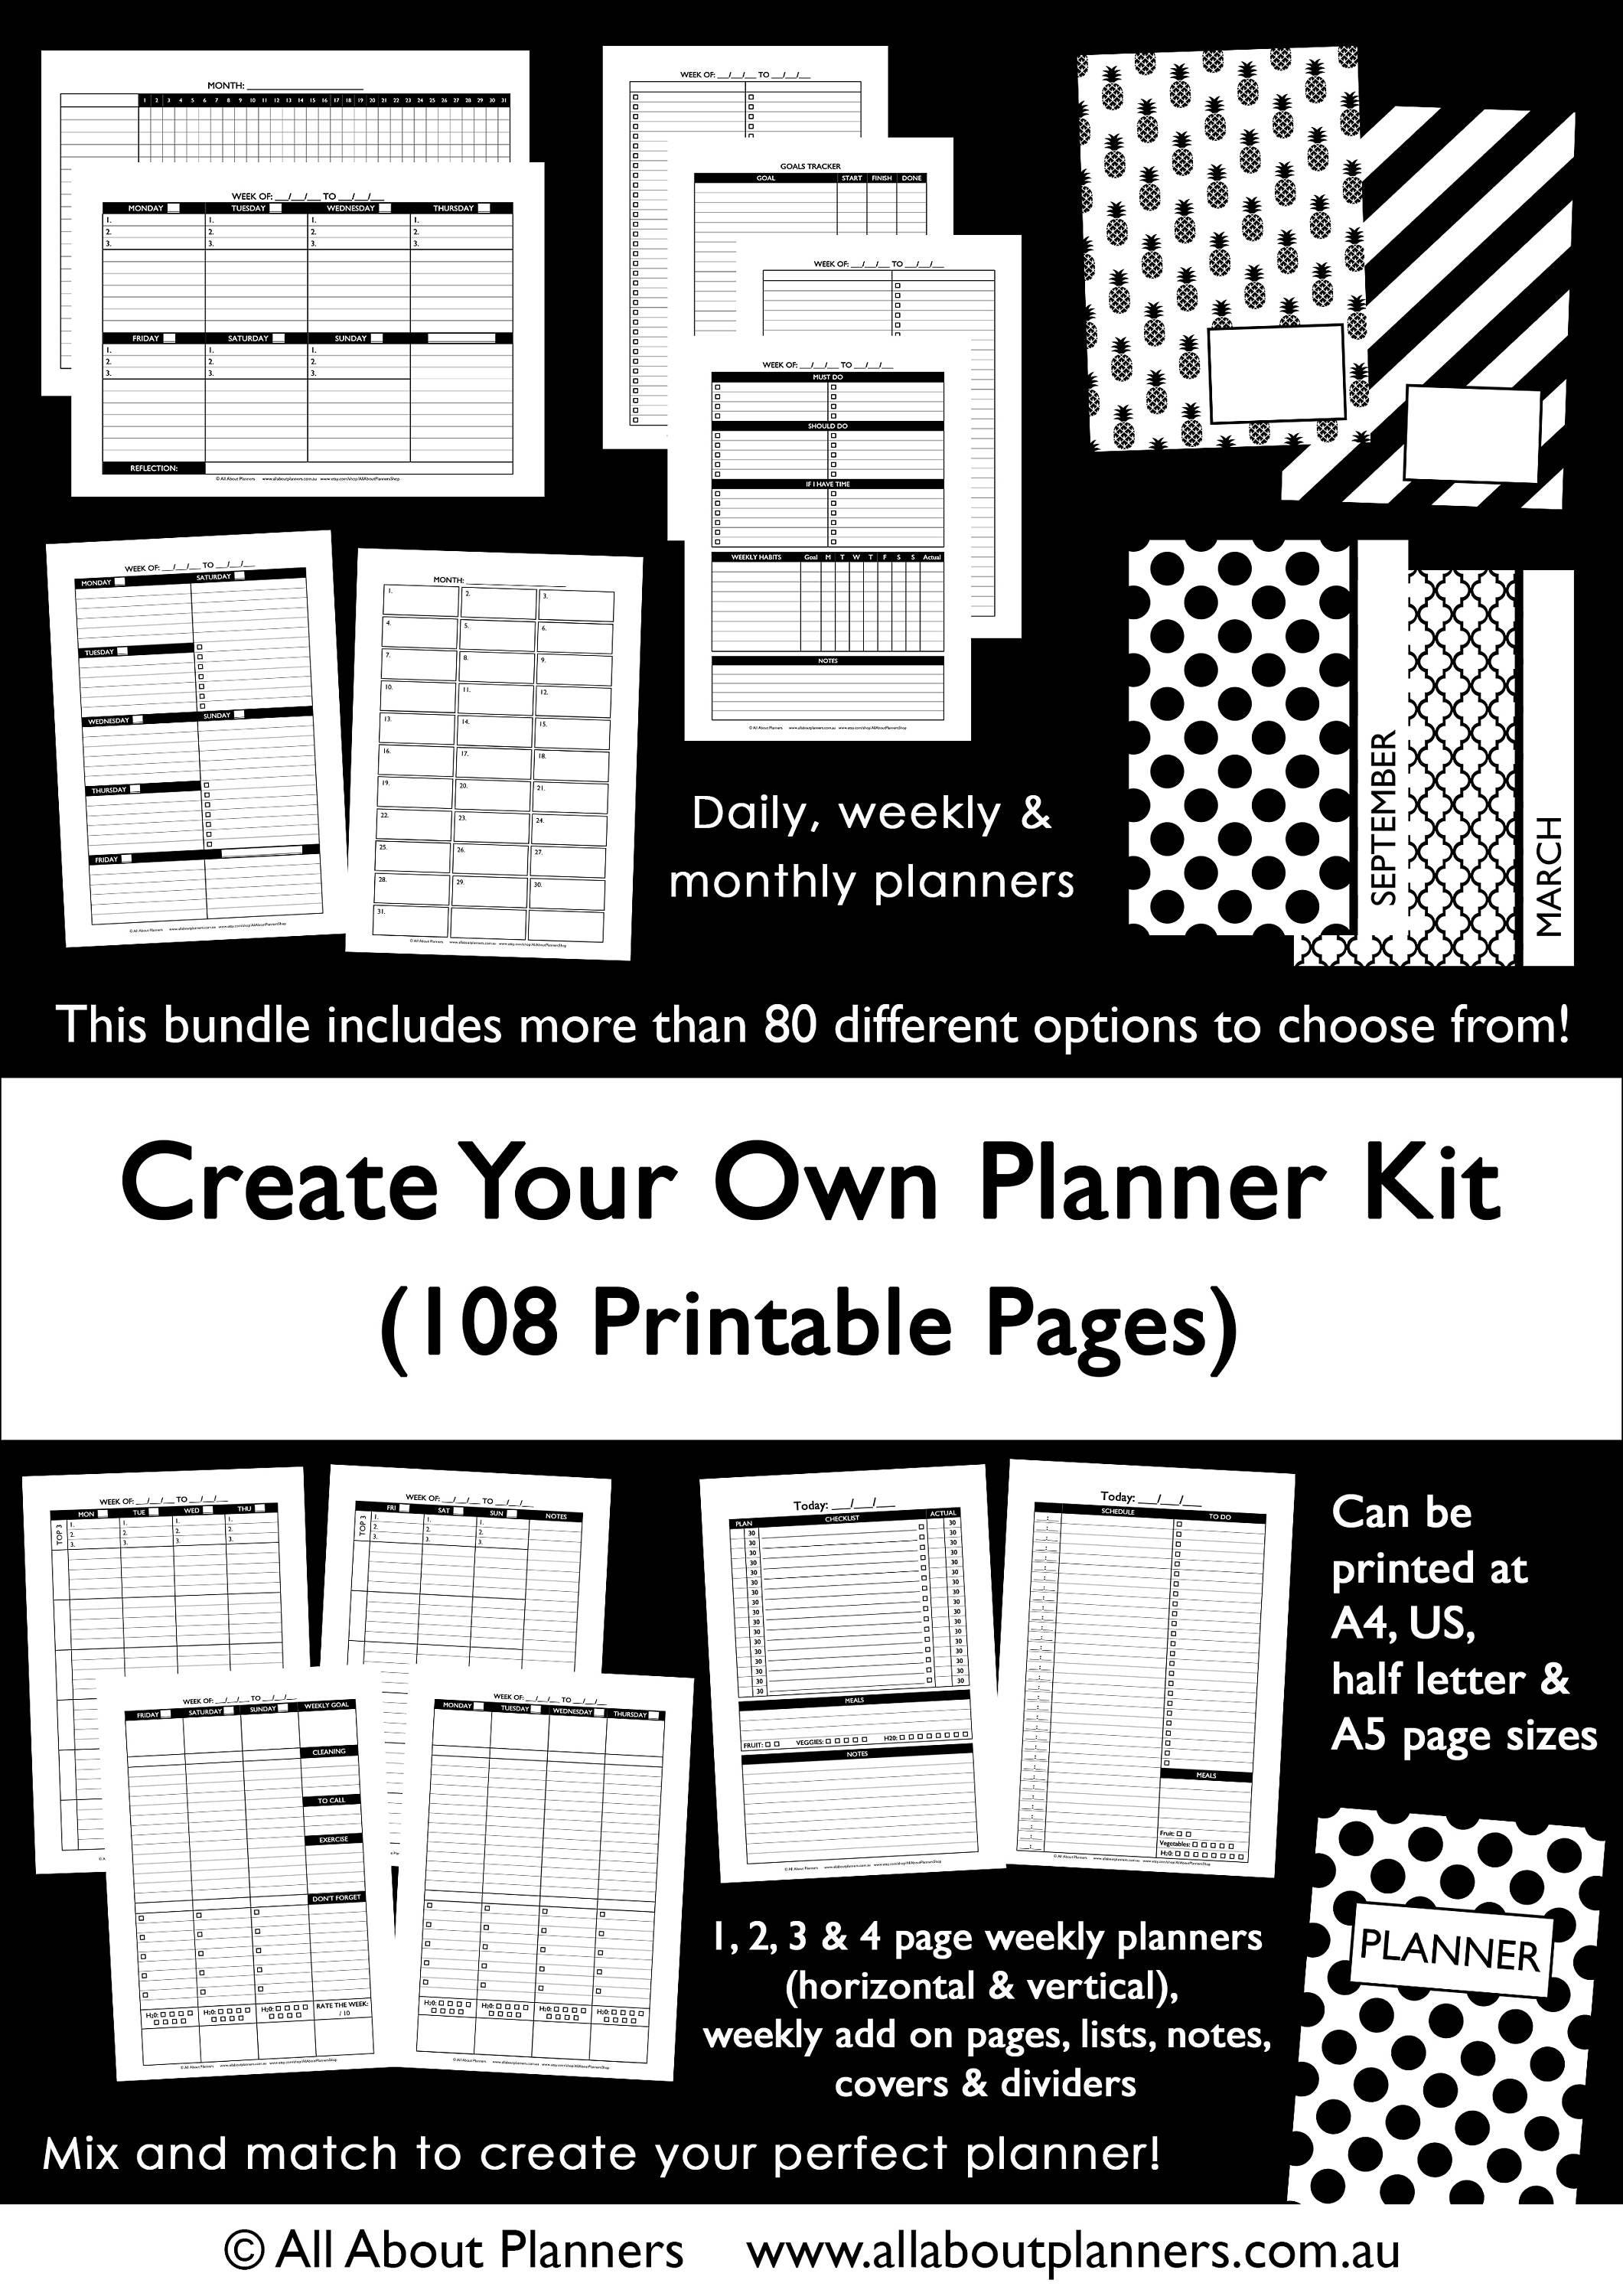 custom planner kit printable build your own weekly daily. Black Bedroom Furniture Sets. Home Design Ideas